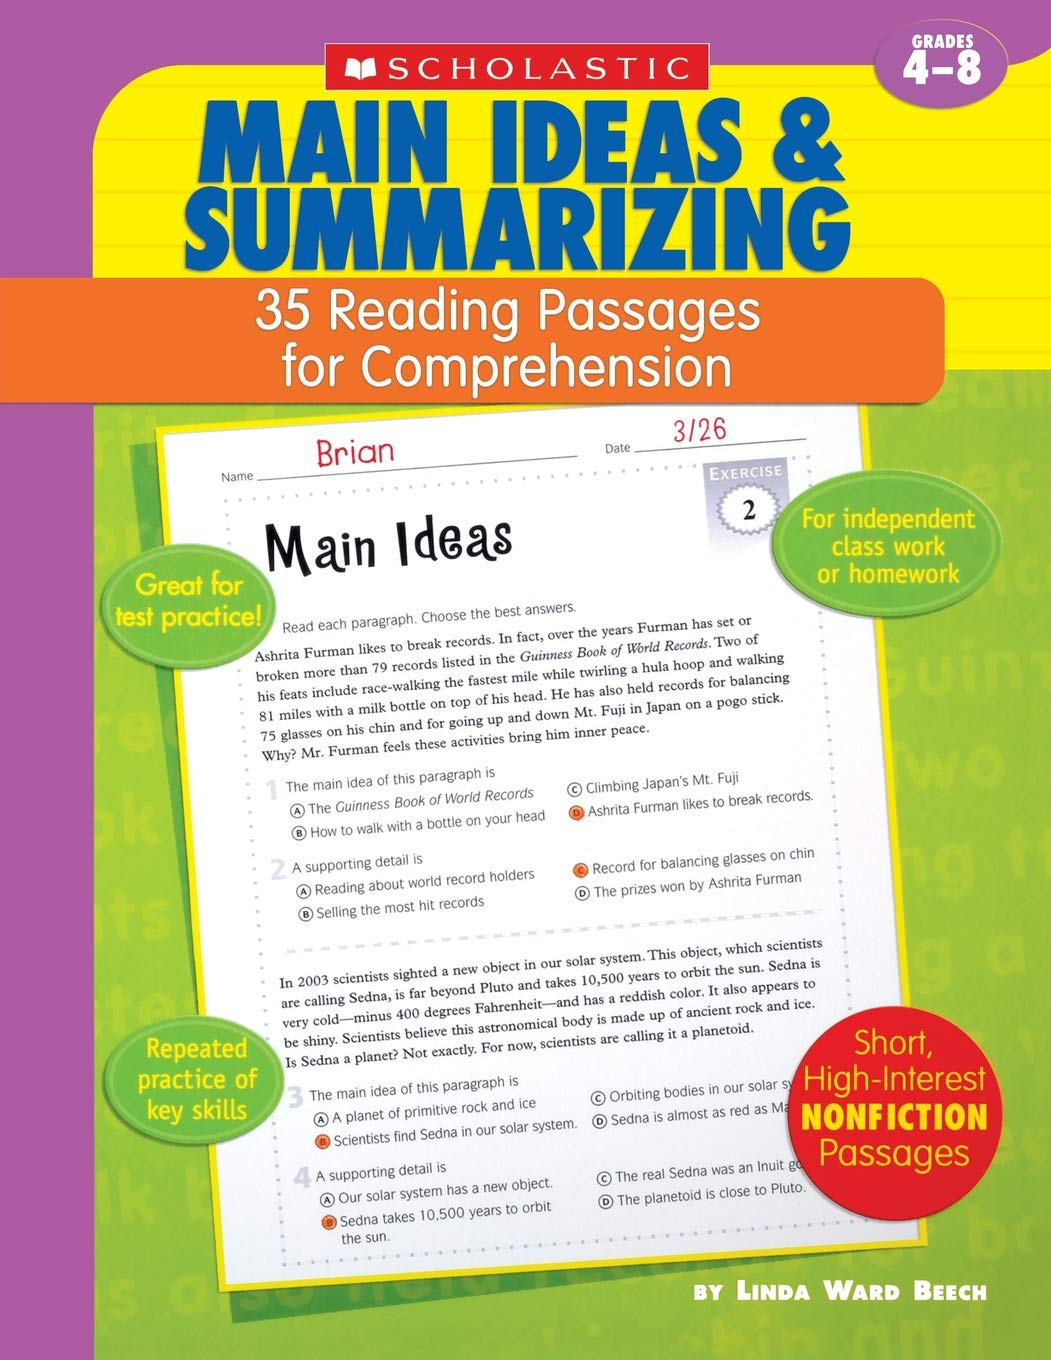 - Amazon.com: 35 Reading Passages For Comprehension: Main Ideas